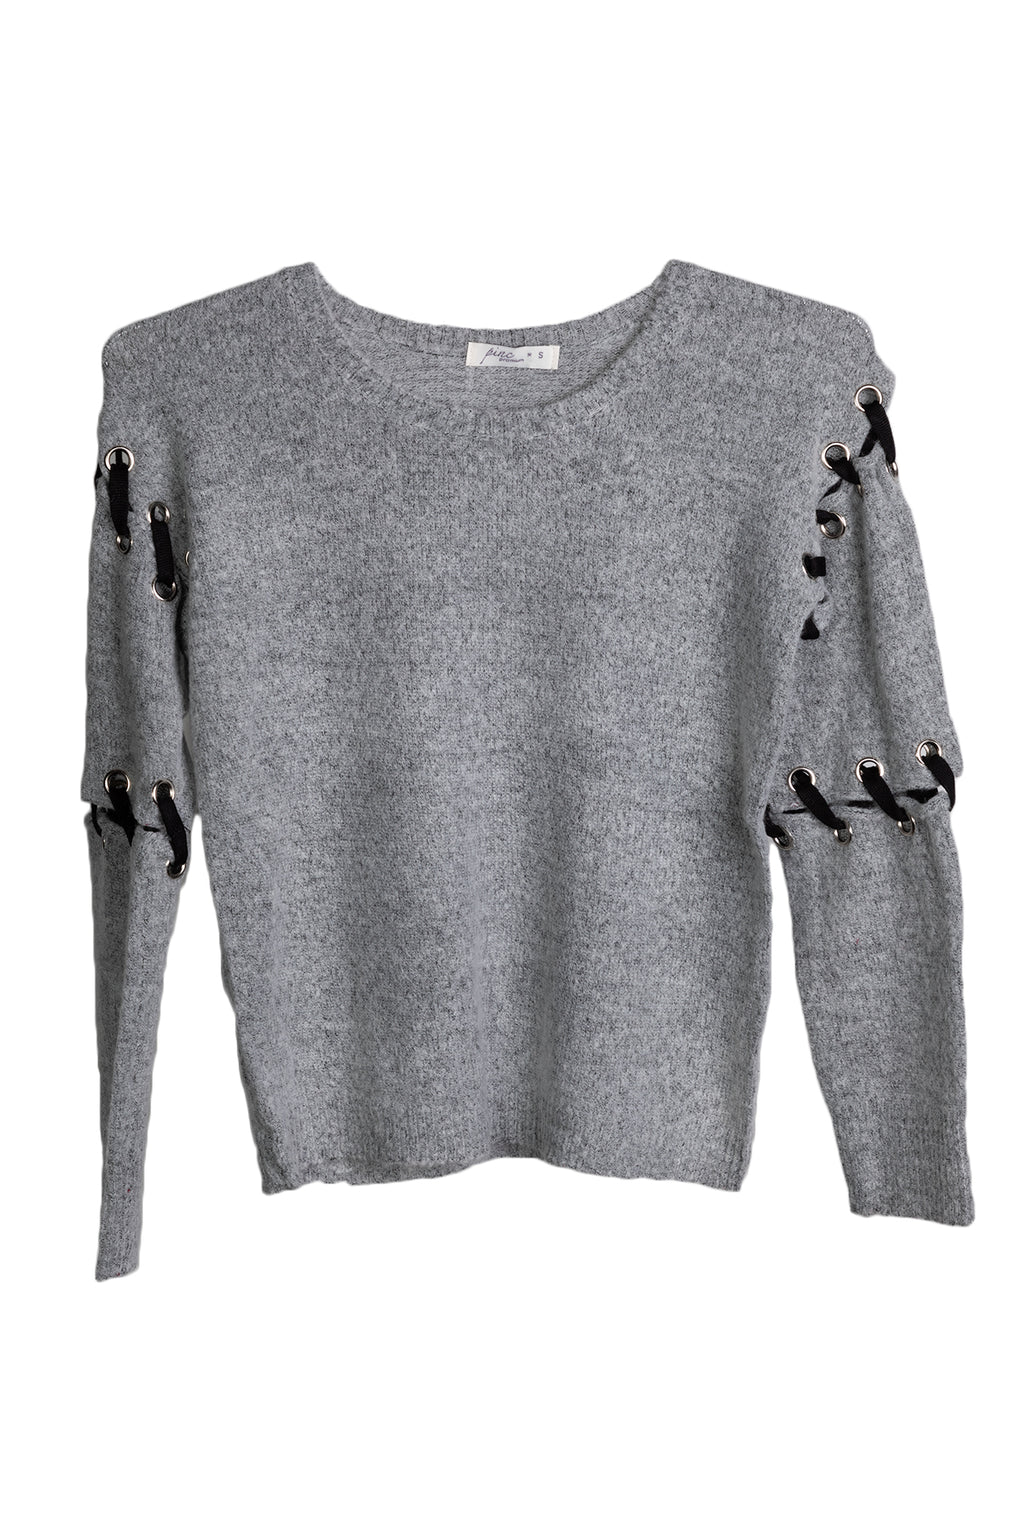 Pinc Premium Girls Heather Grey and Black Stitch Sweater